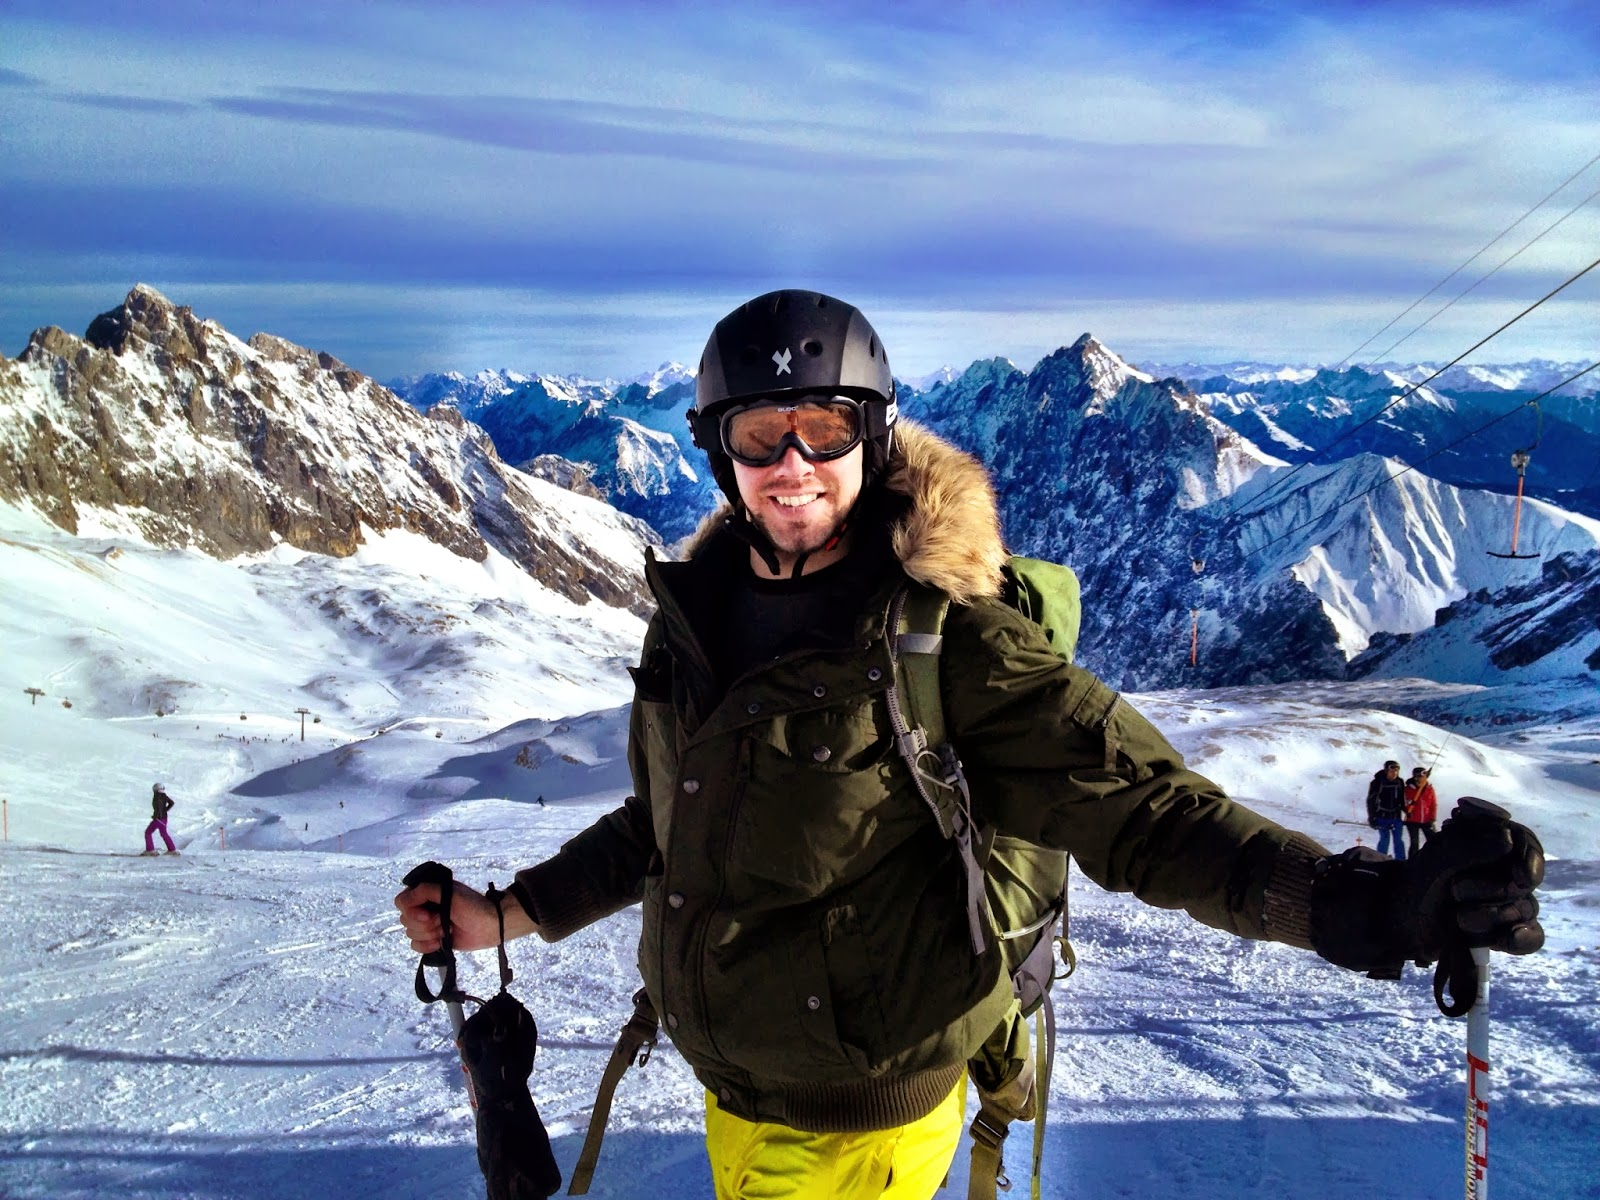 Simon skiing on the Zugspitze, Germany